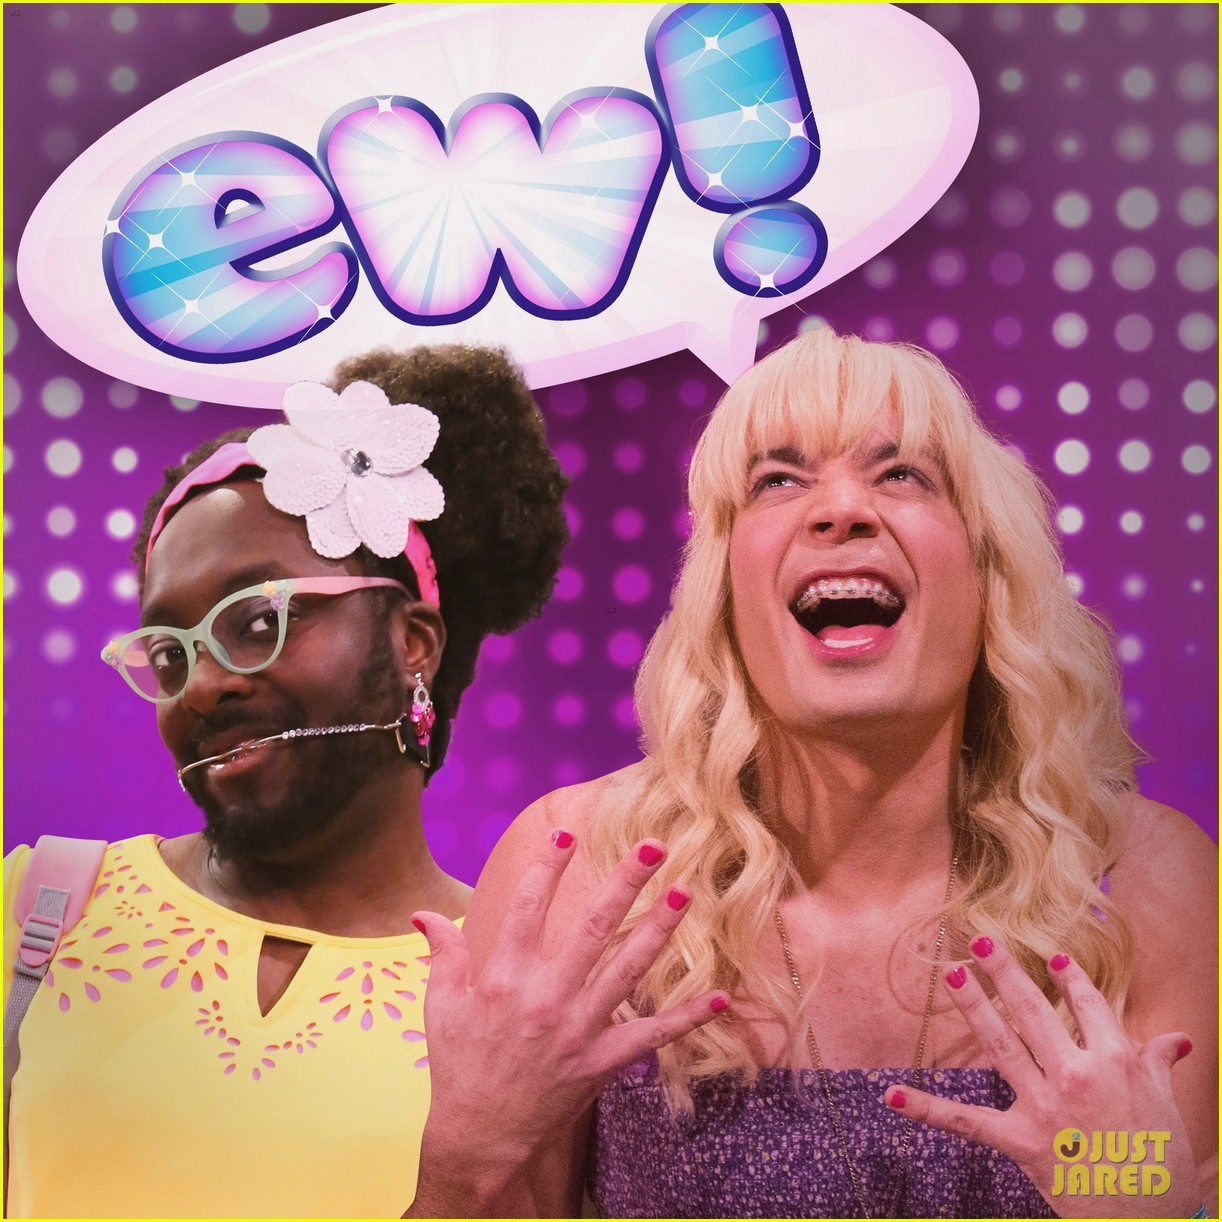 Jimmy Fallon Makes Ew Music Video With William Watch Now